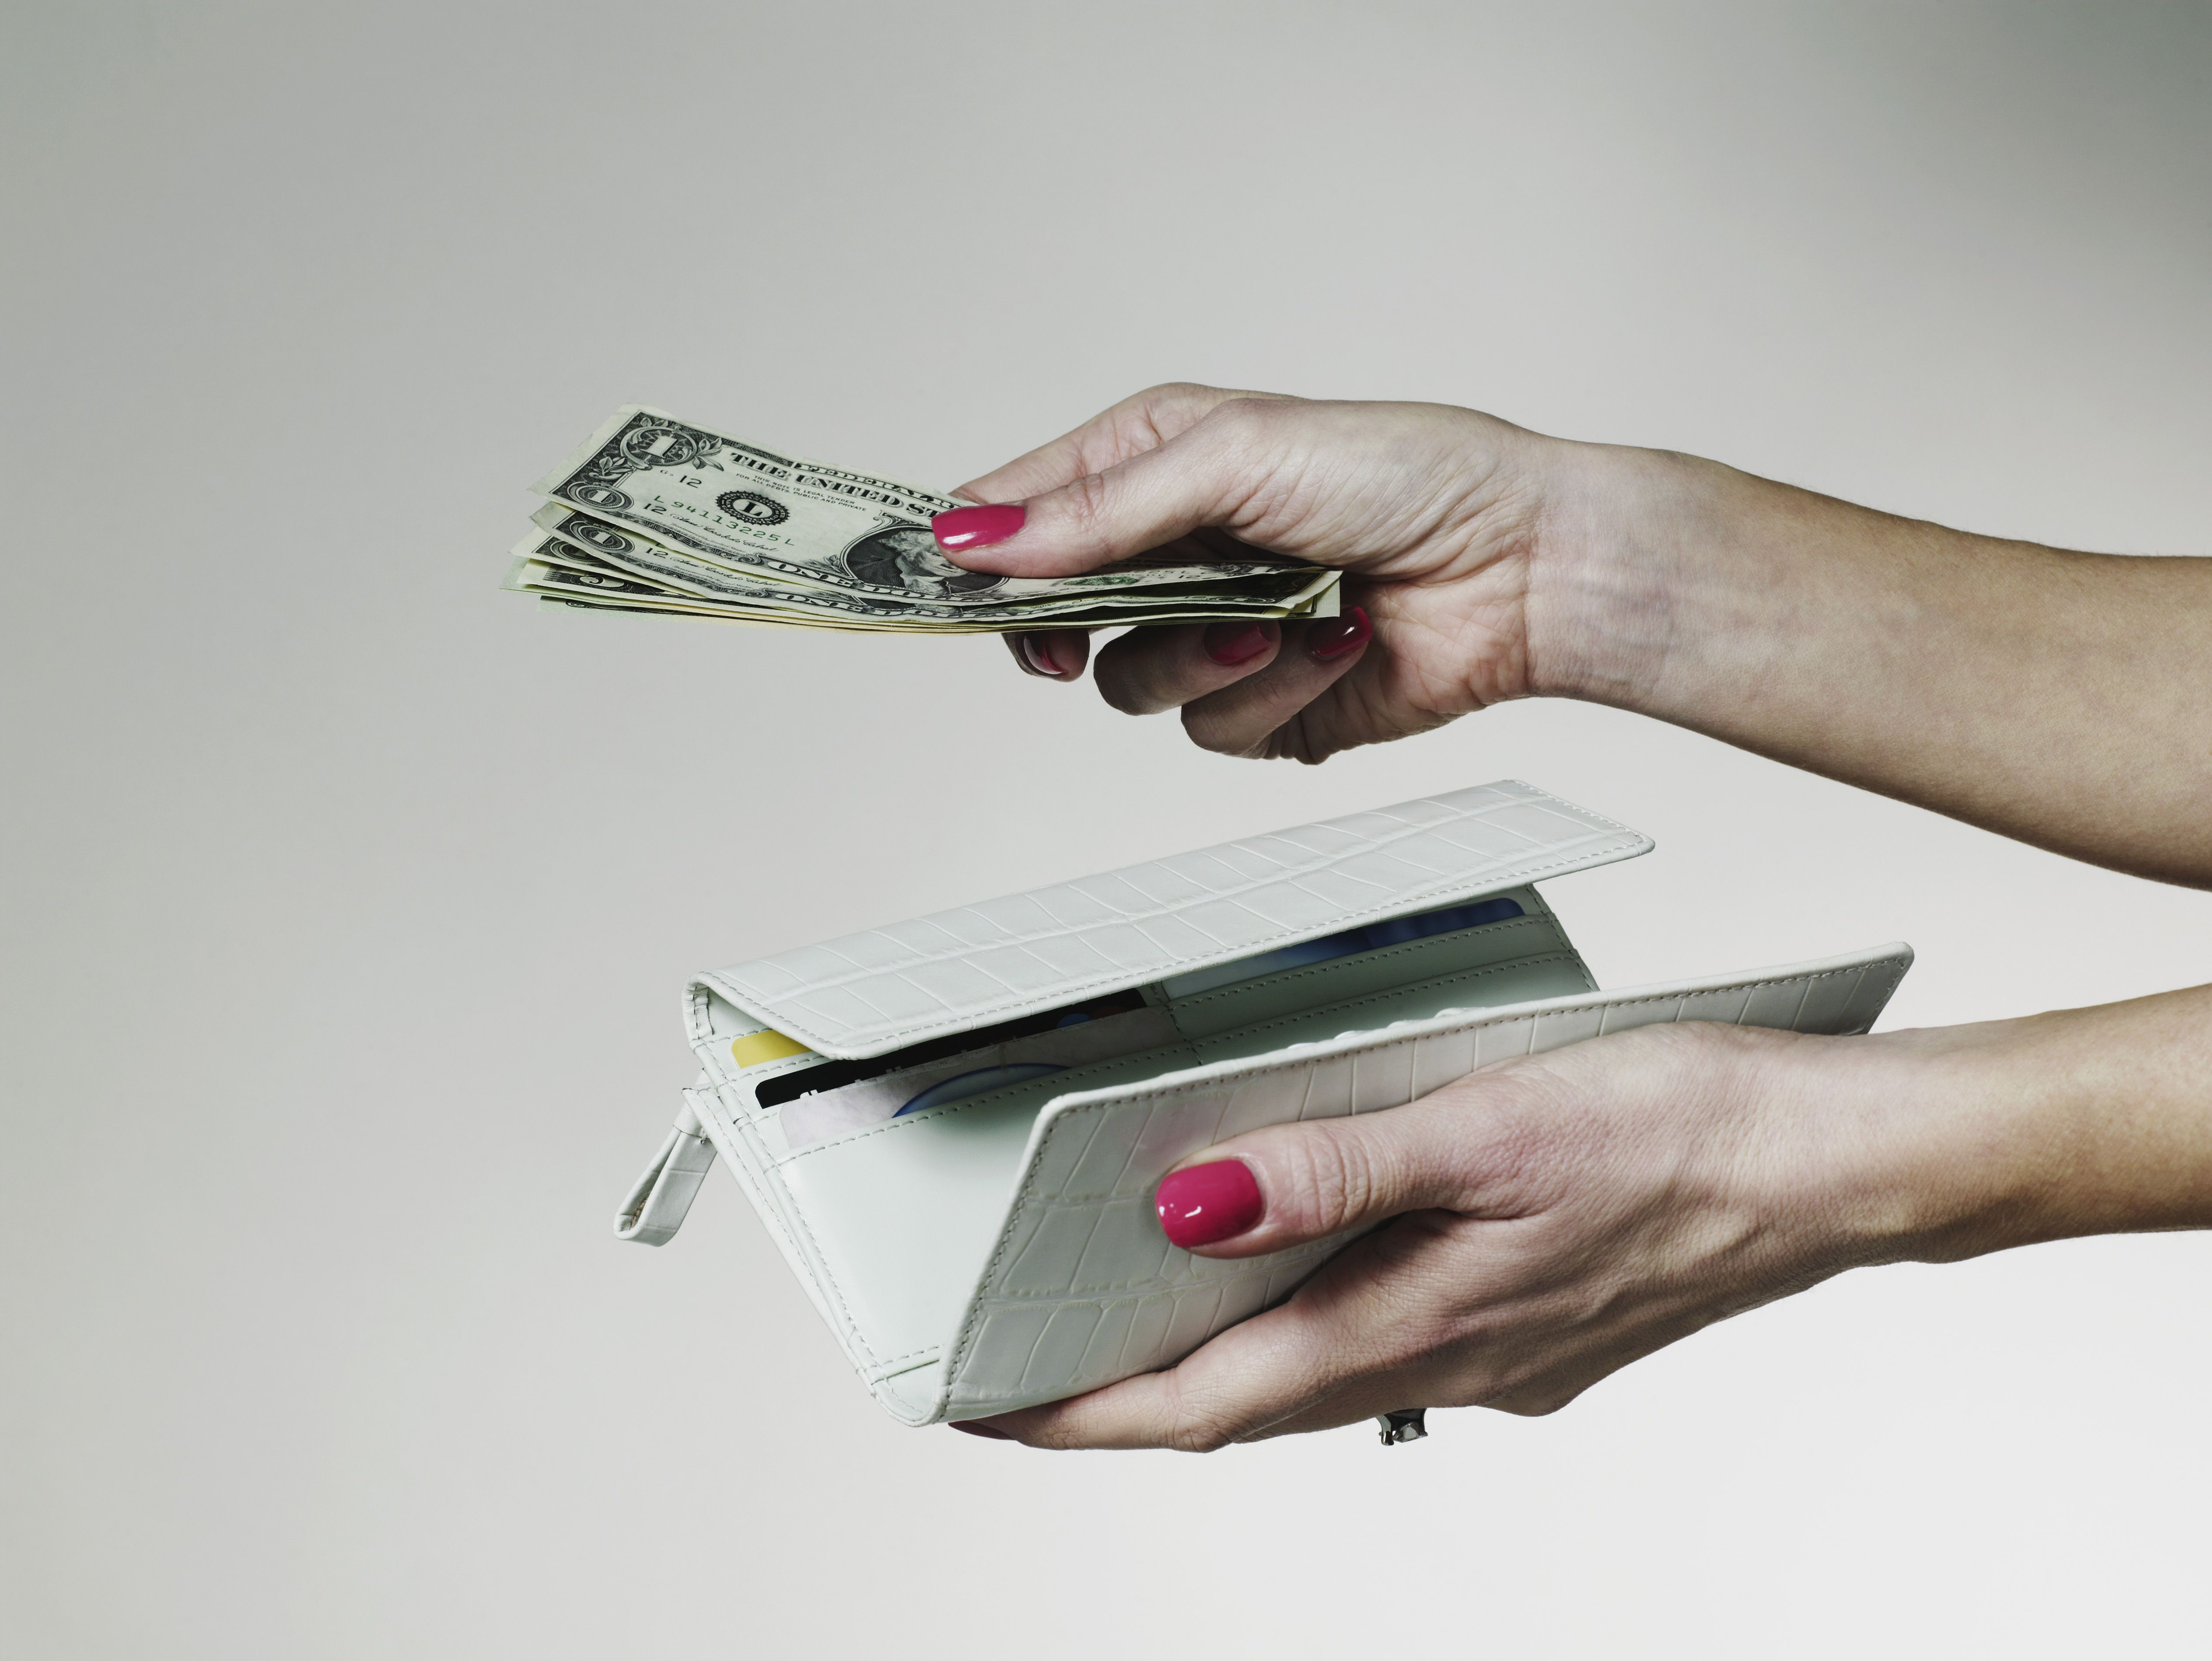 Hands with billfold and cash